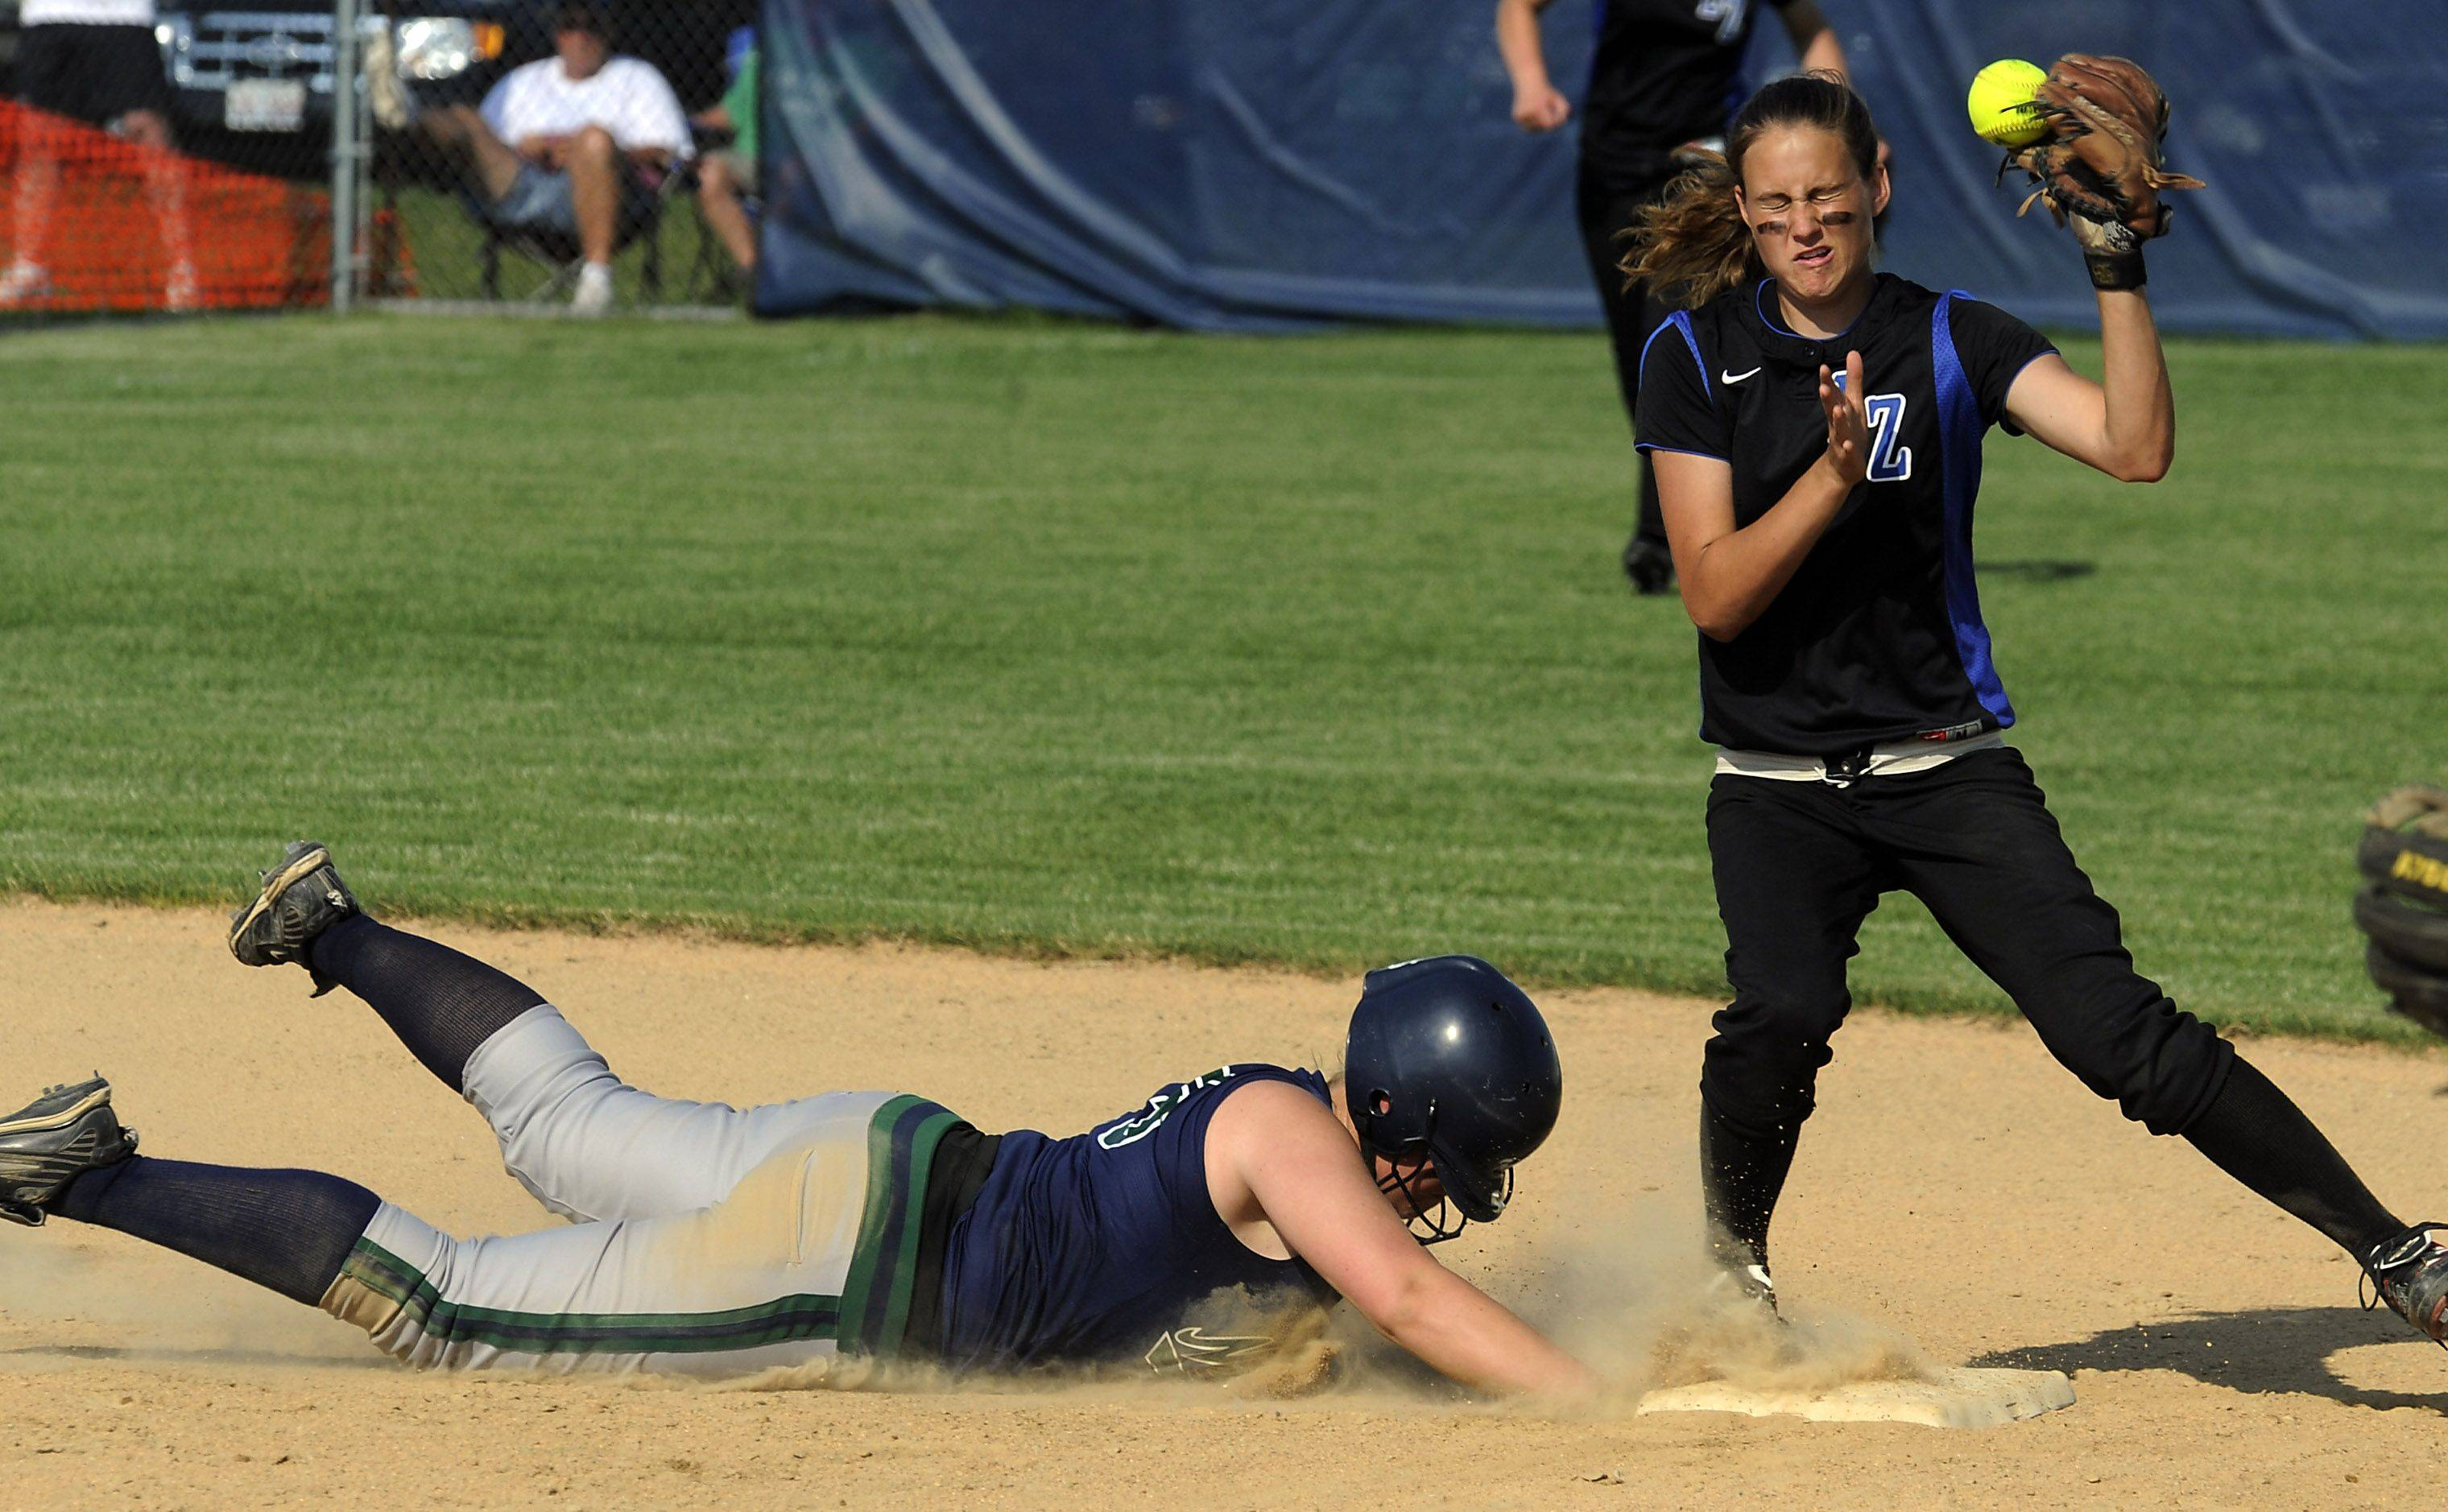 Lake Zurich shortstop Tabbetha Bohac mishandles the ball in this pick-off attempt on New Trier's Chelsea Delaney in the 4th inning in the Class 4A Glenbrook South softball supersectional title game on Monday.